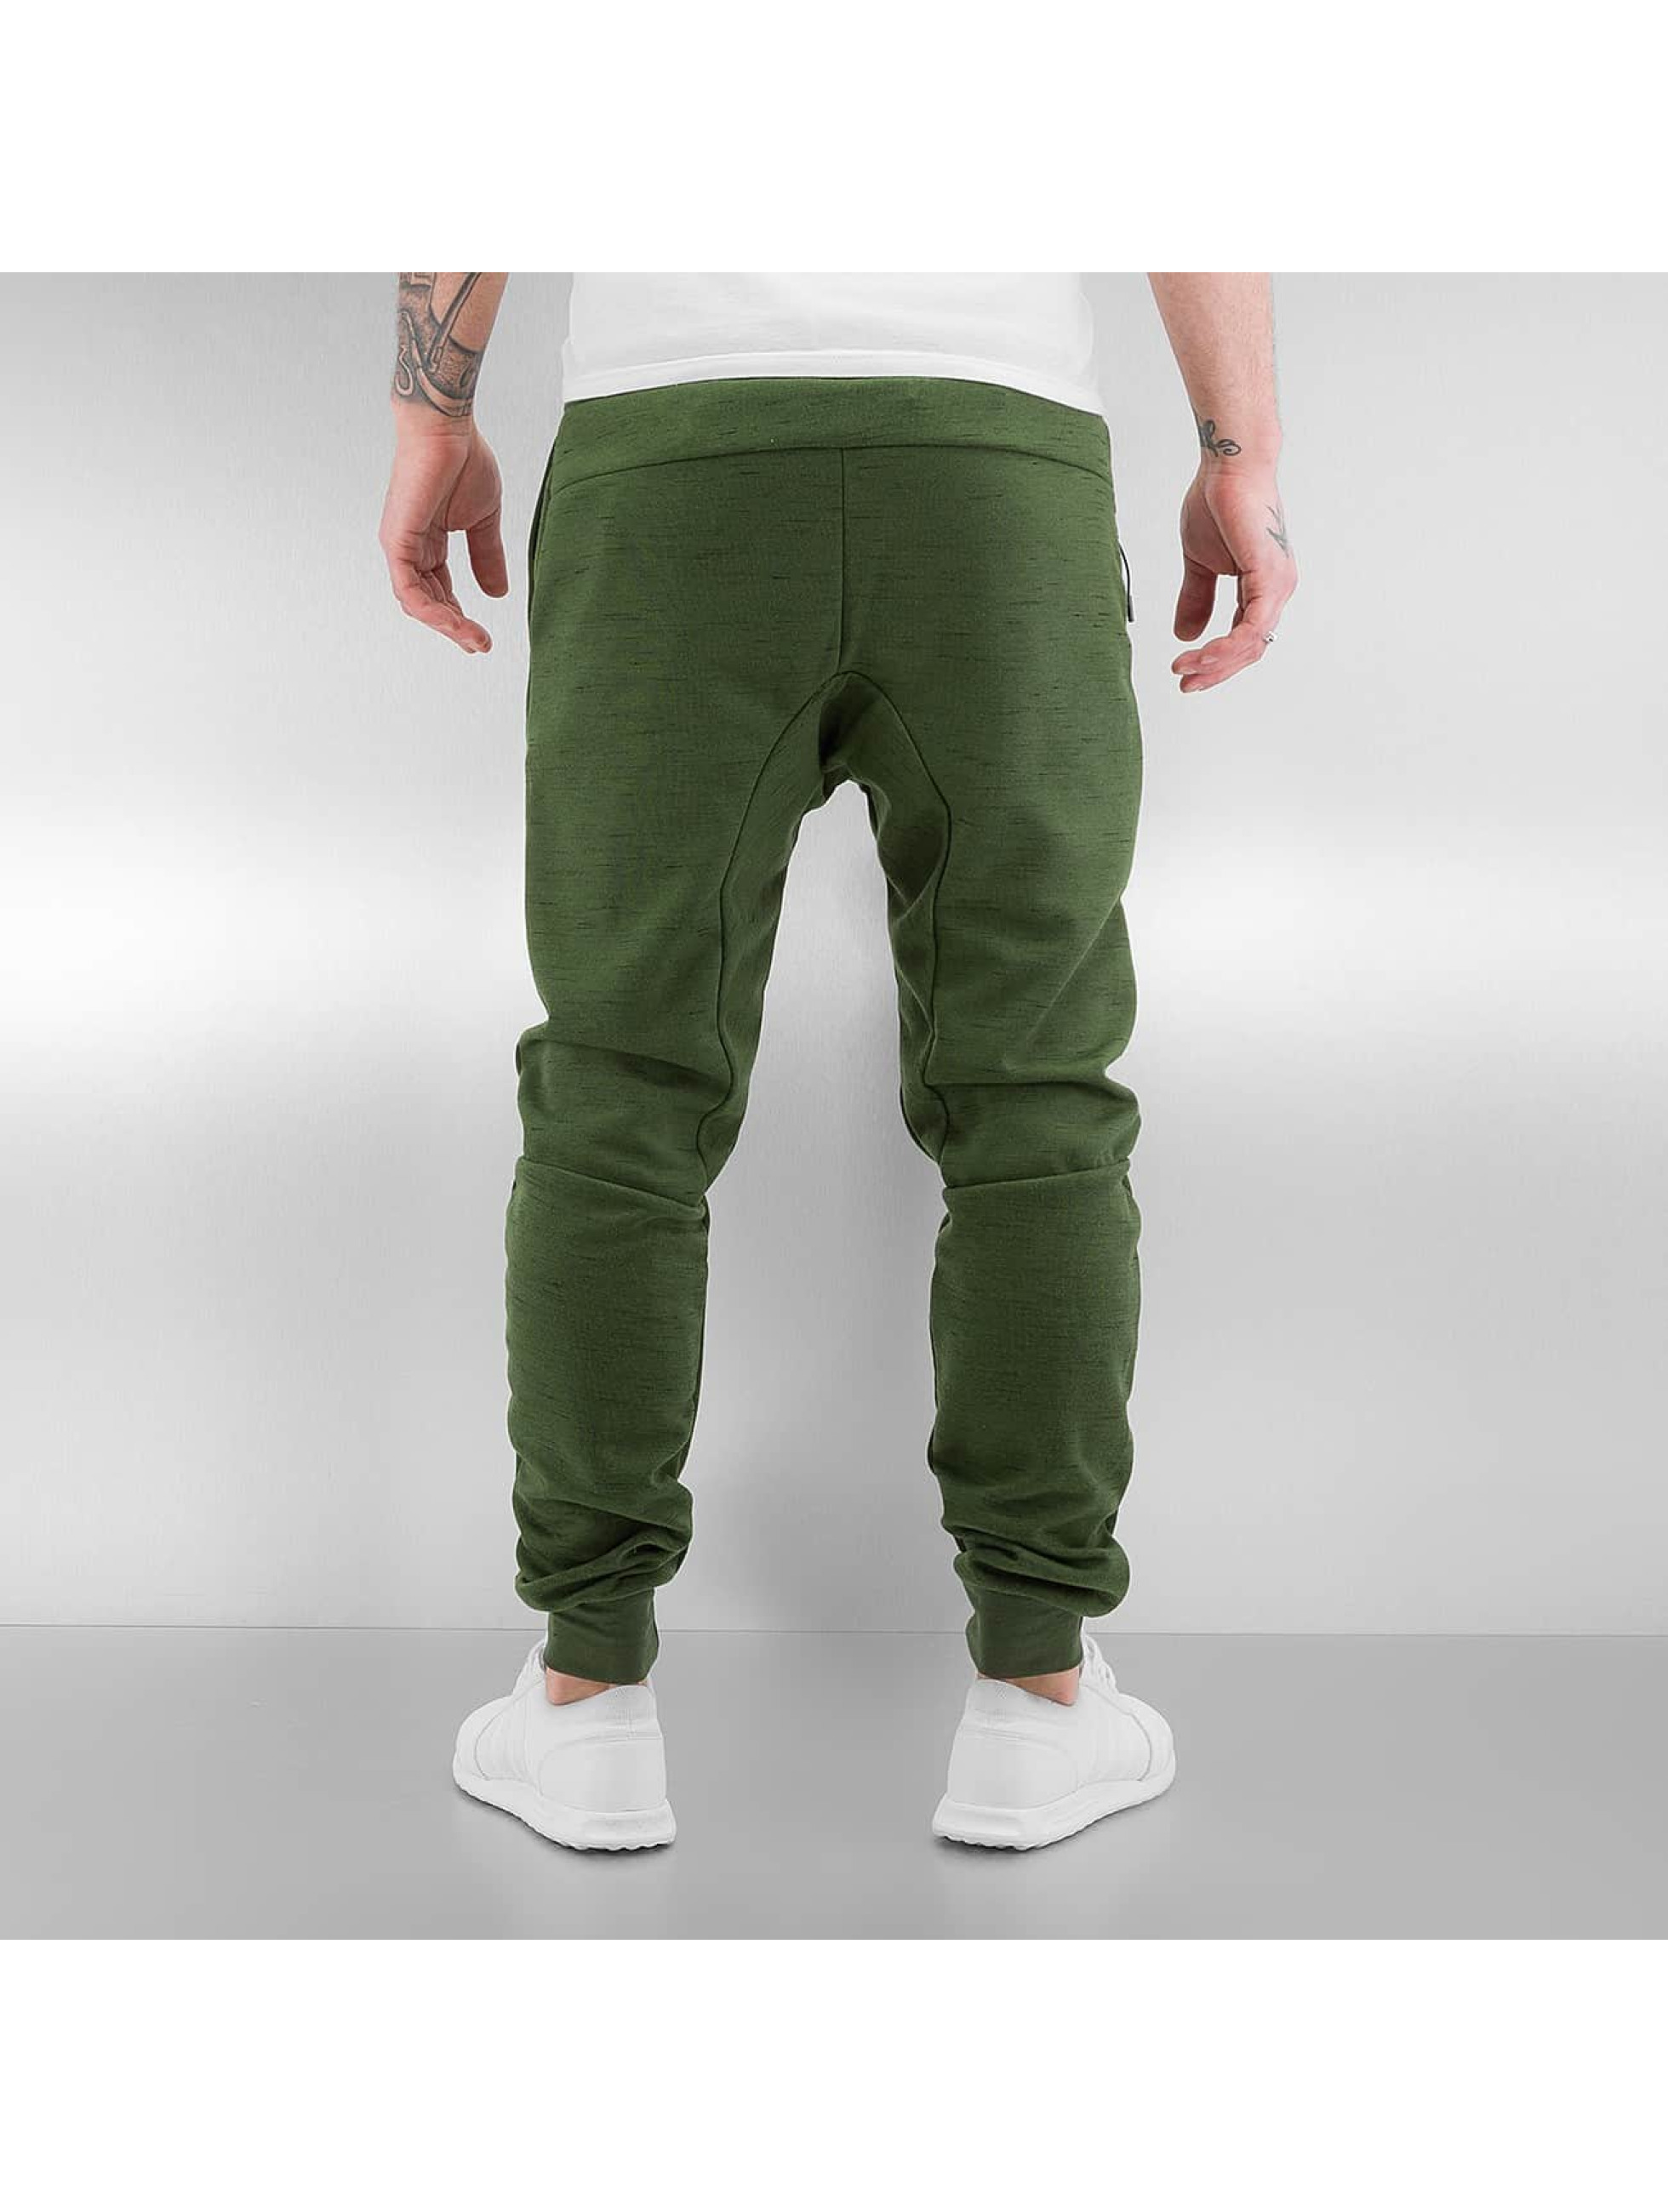 2Y Joggingbukser London khaki